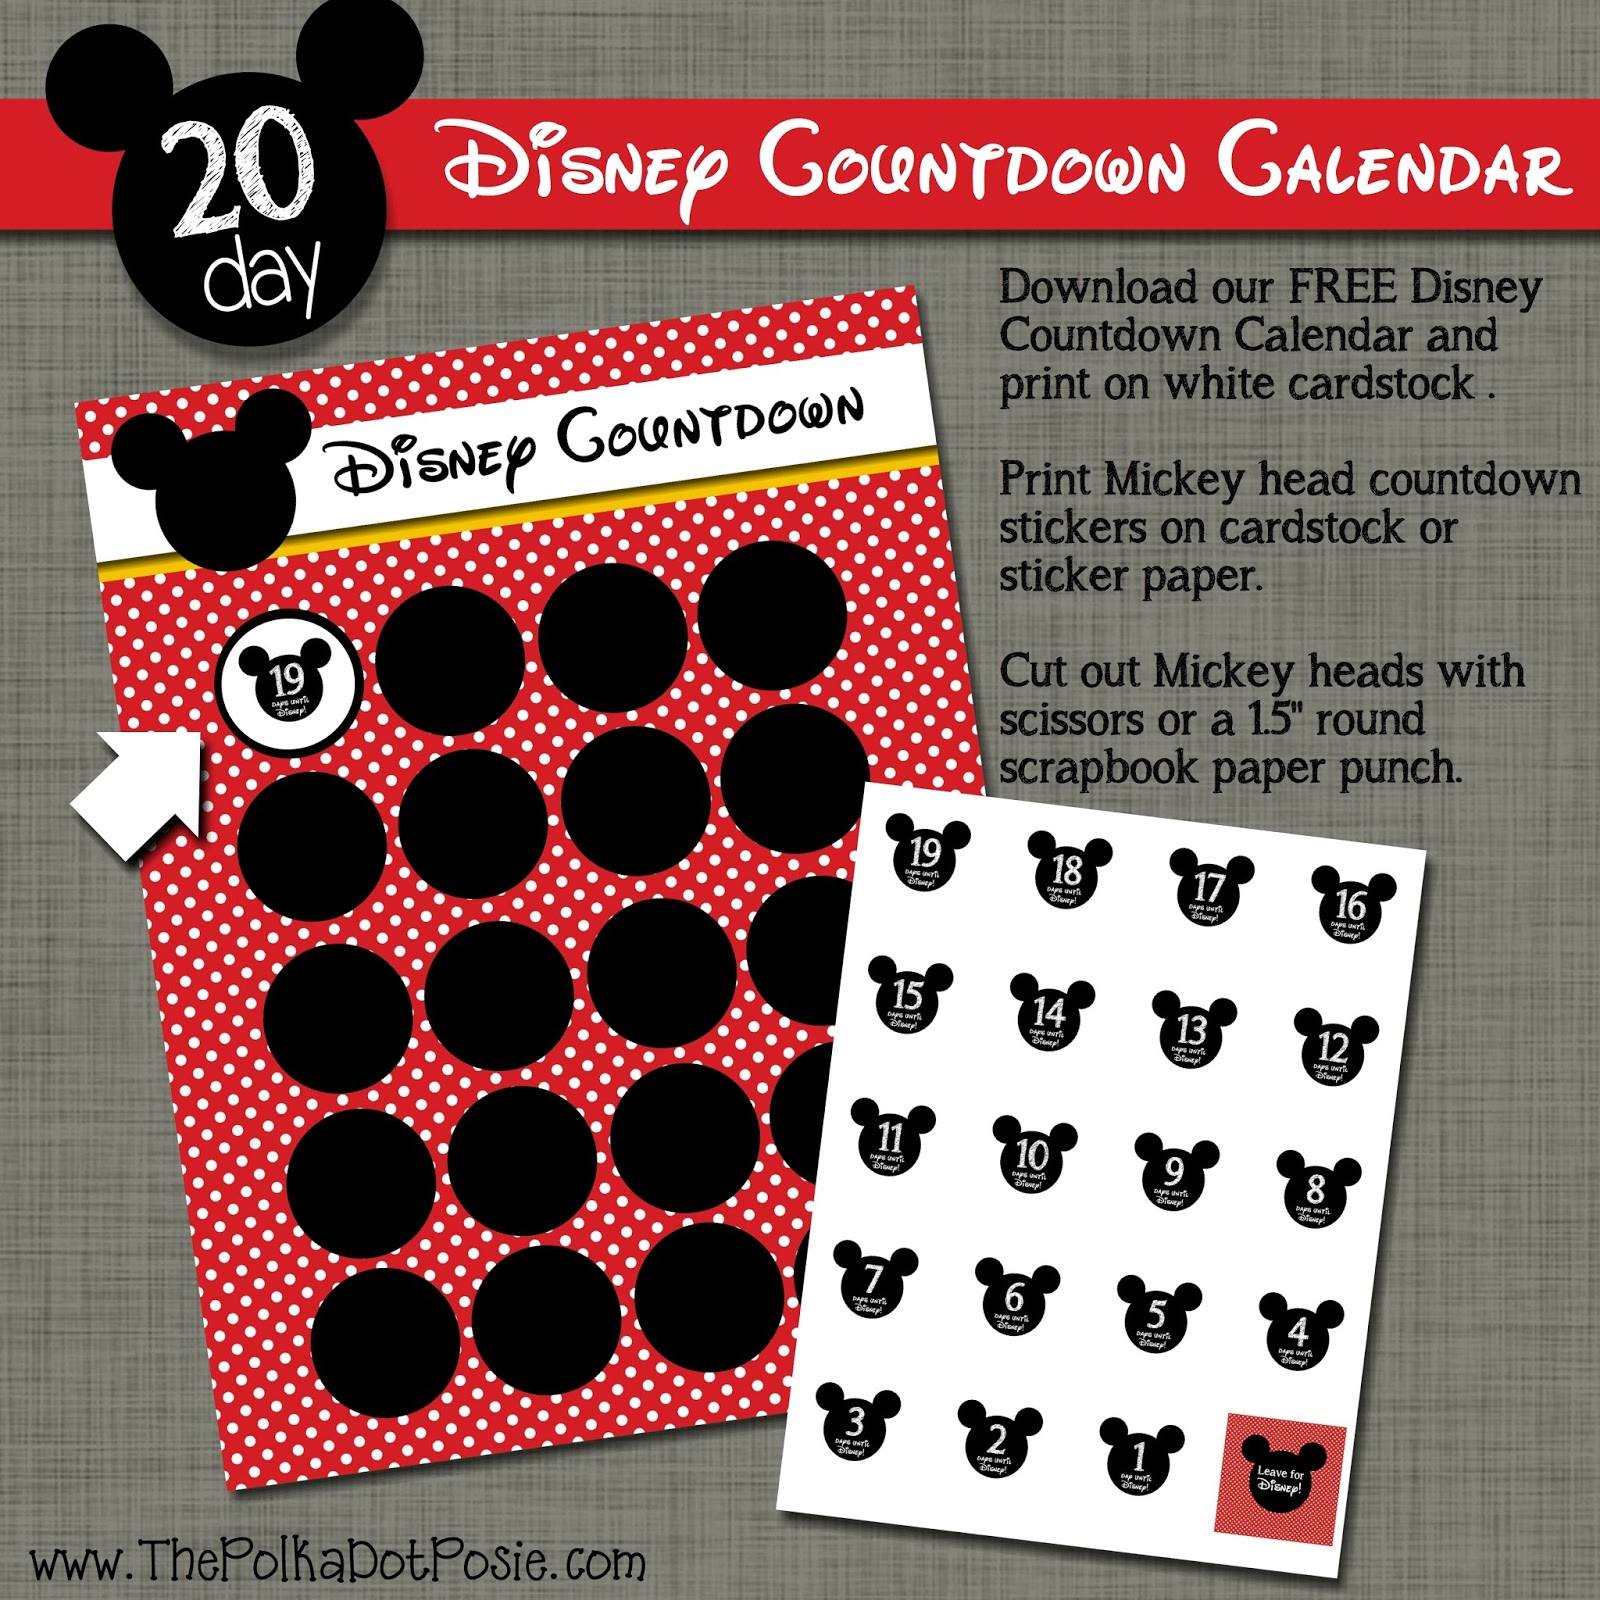 picture about Disney Countdown Calendar Printable known as The Polka Dot Posie: No cost Disney Countdown Sticker Calendar